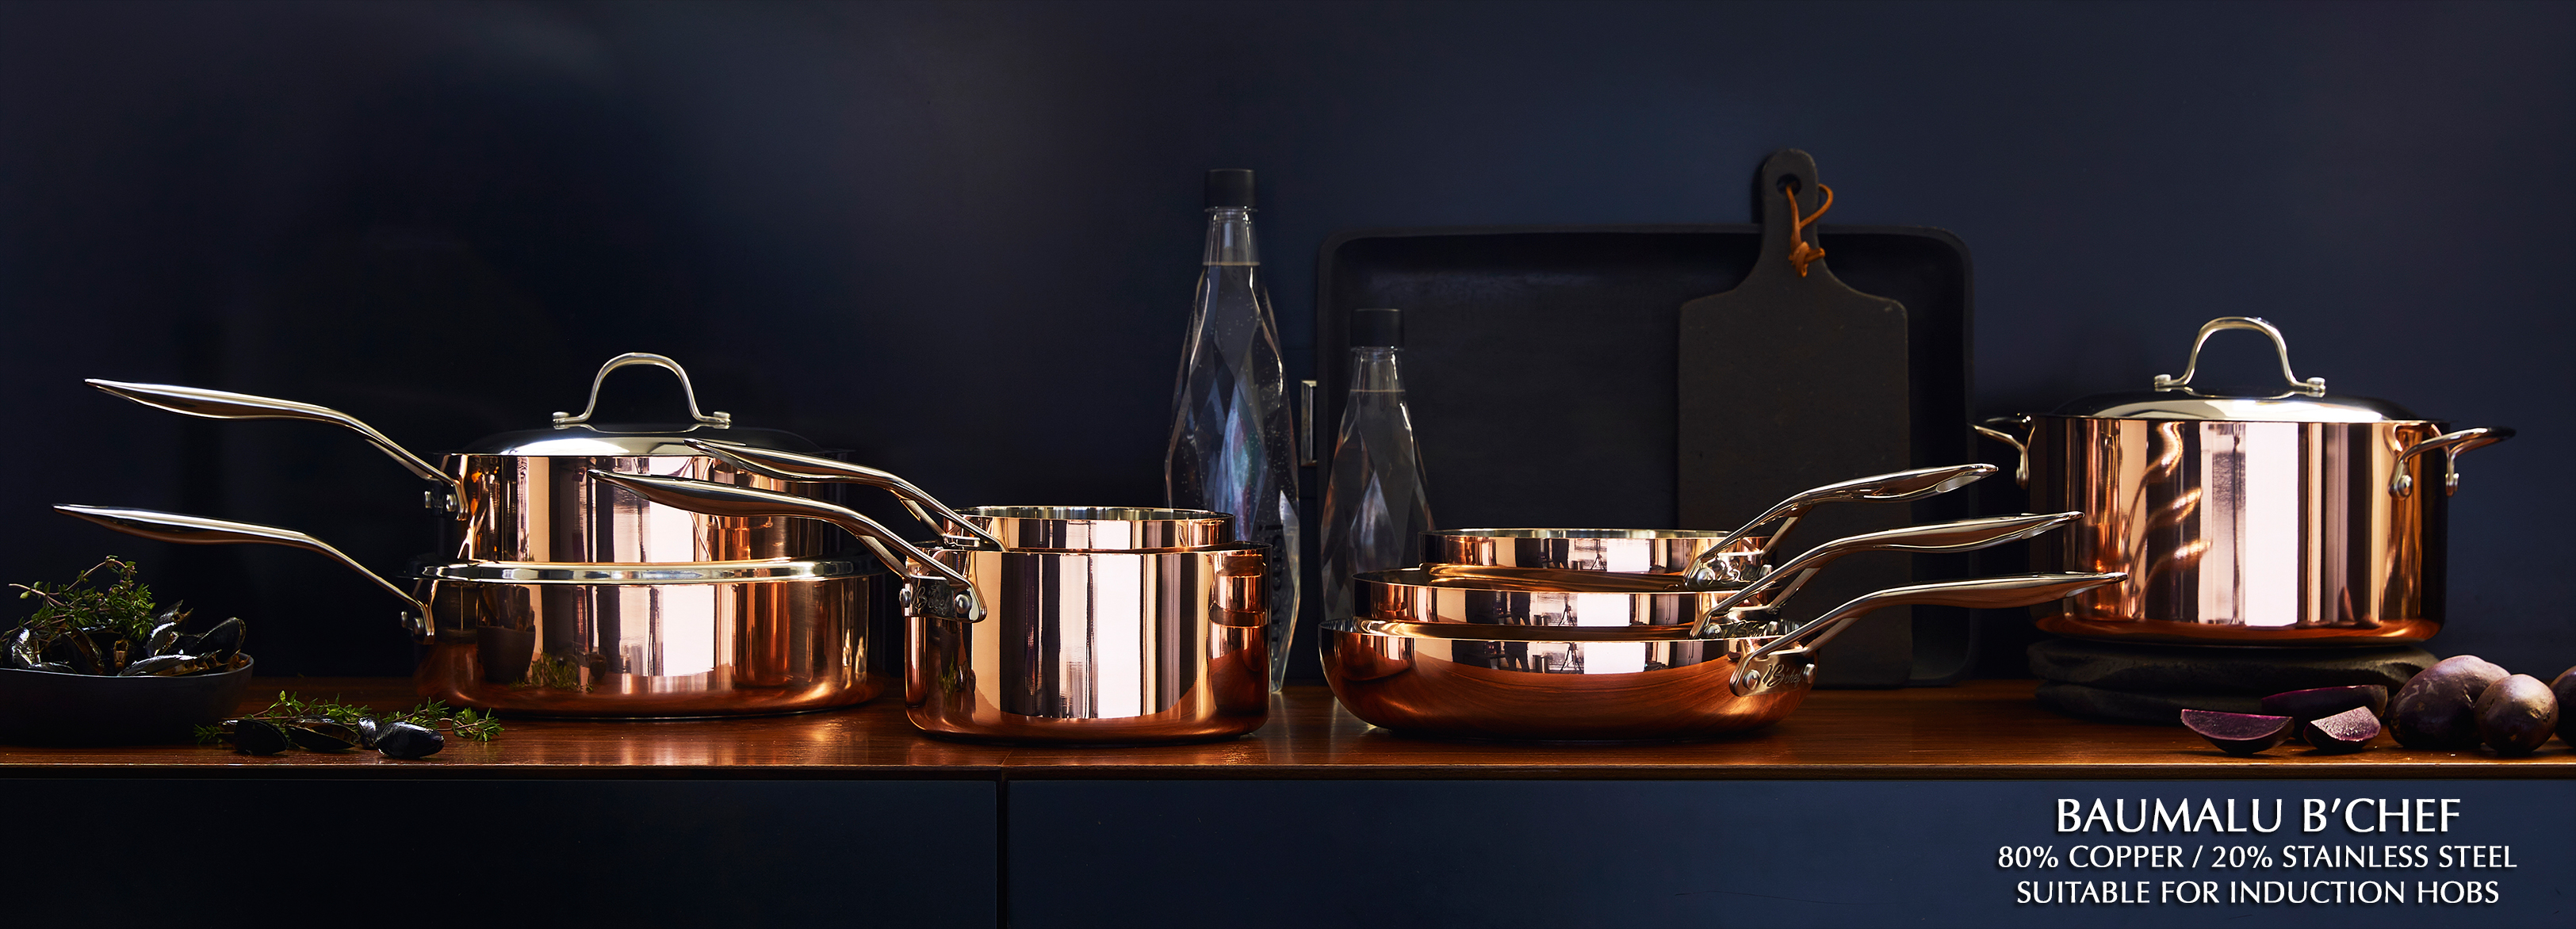 Baumalu B'Chef Series: 80% Copper and 20% Stainless Steel. Induction